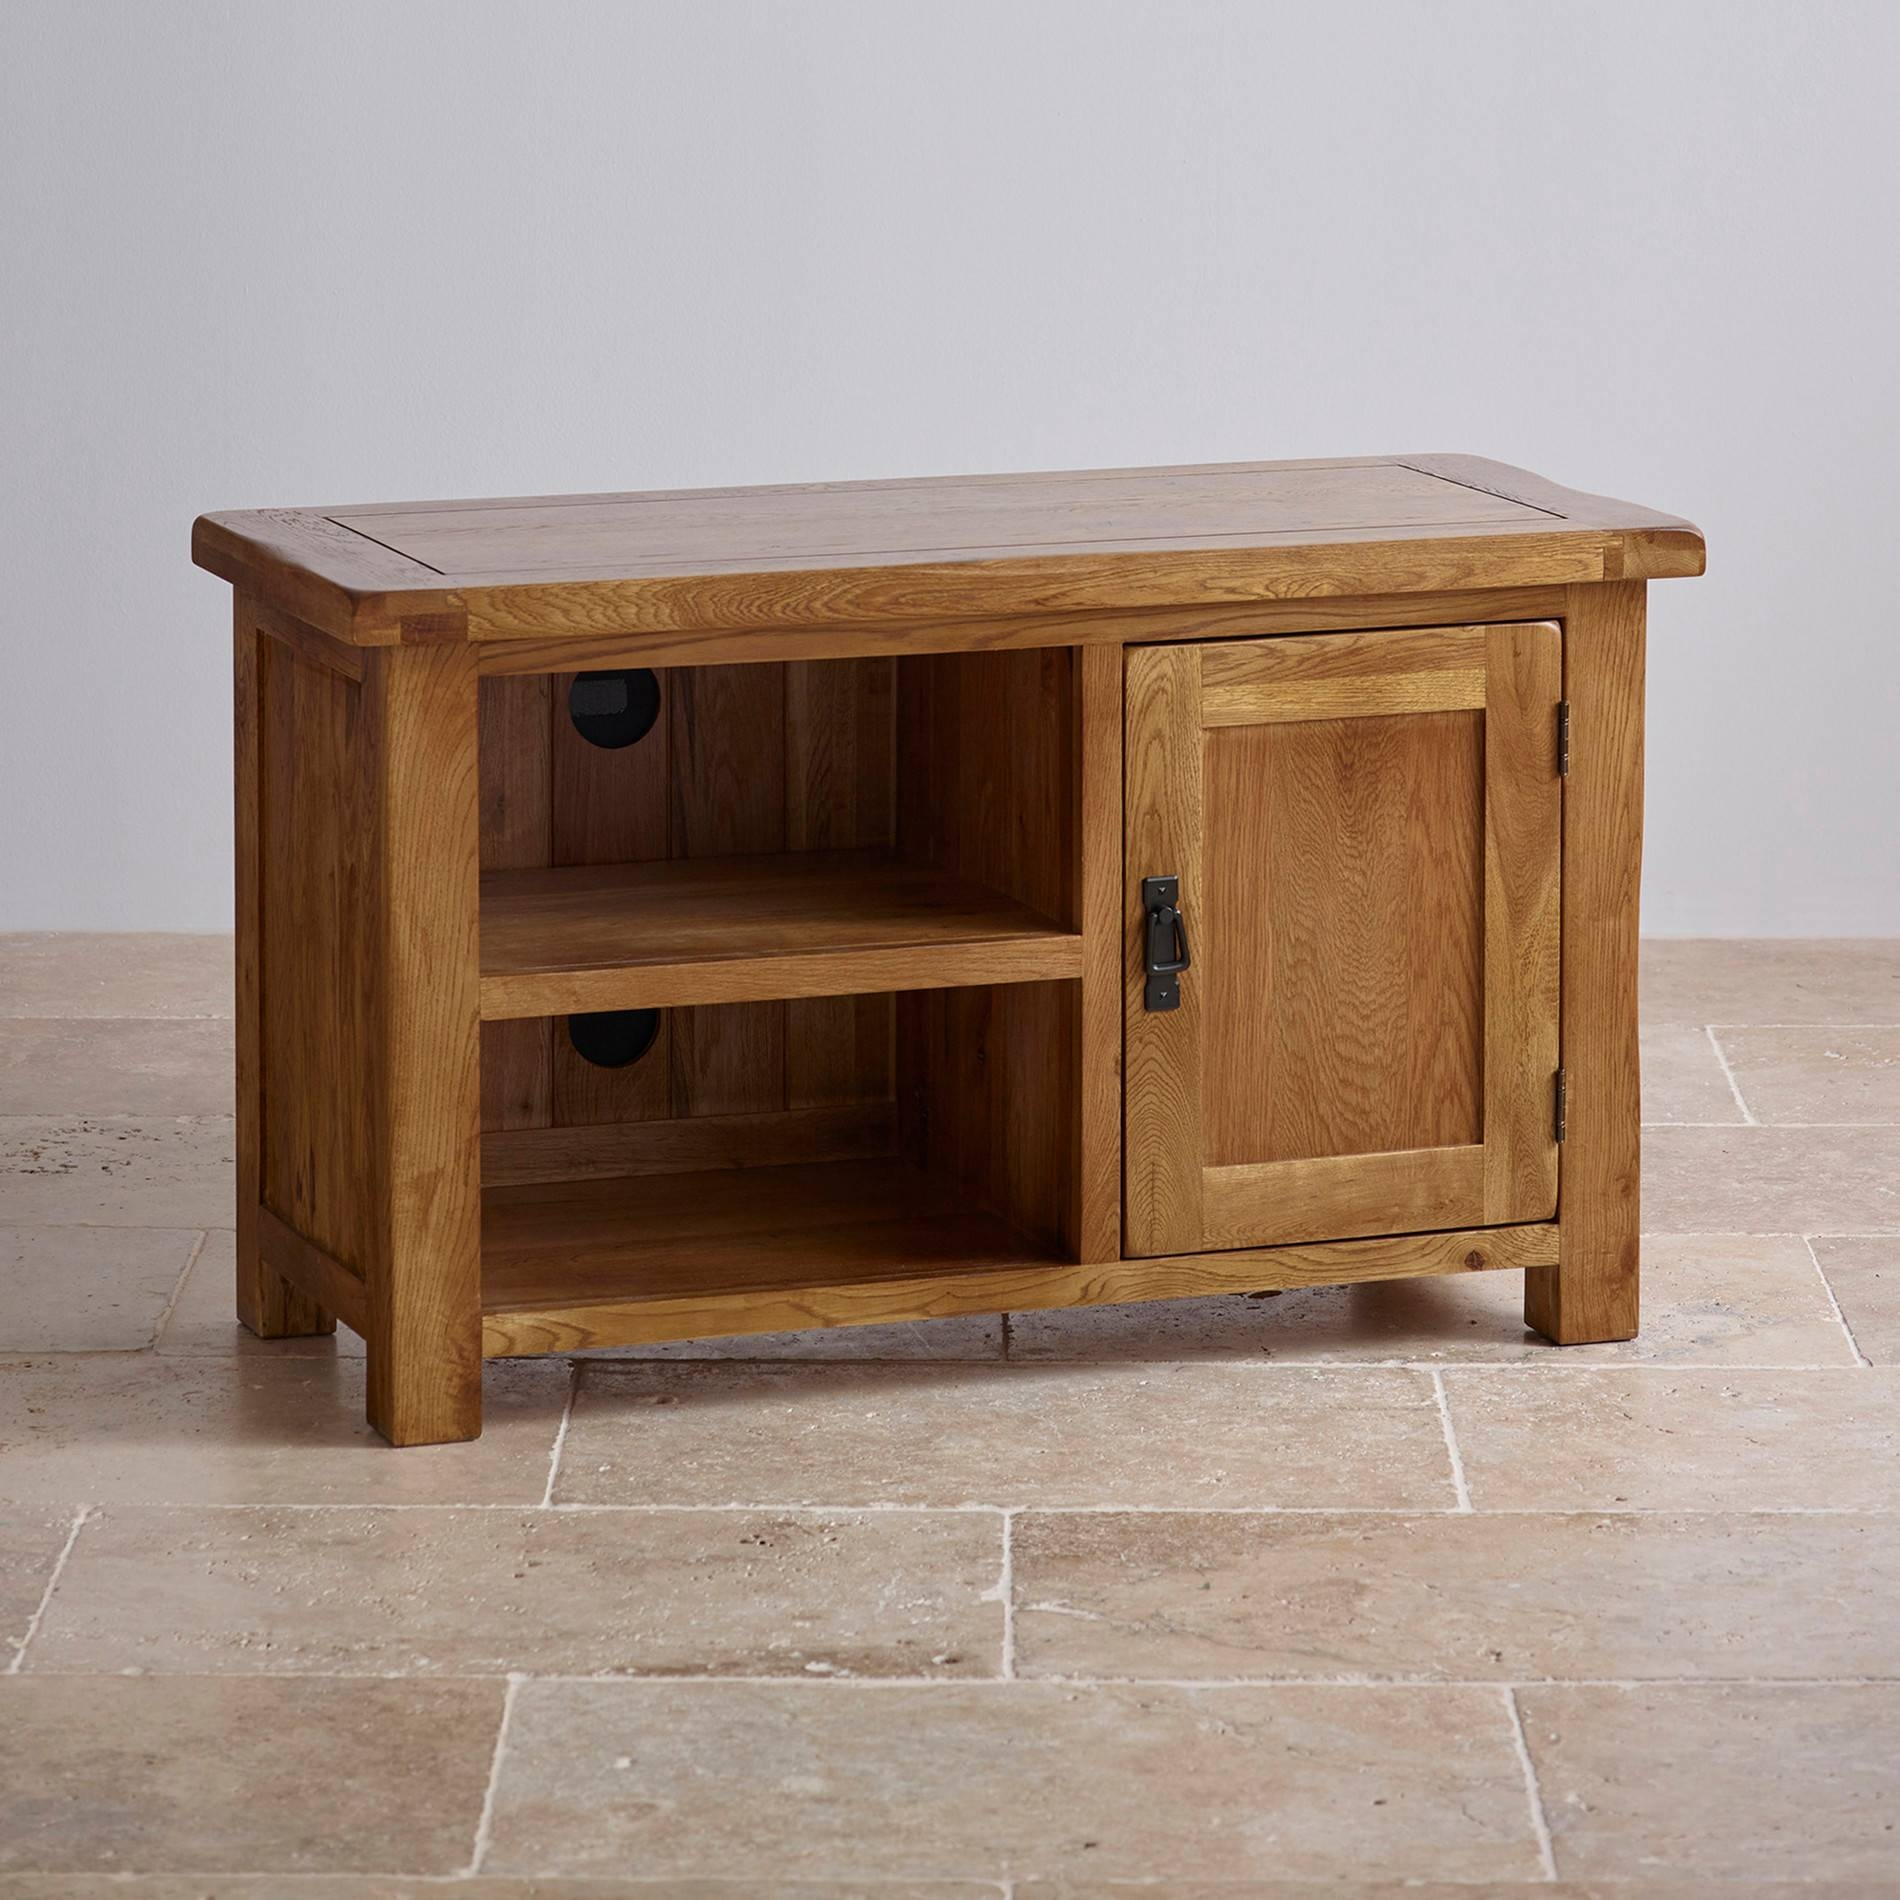 Original Rustic Tv Cabinet In Solid Oak | Oak Furniture Land throughout Oak Tv Cabinets (Image 10 of 15)